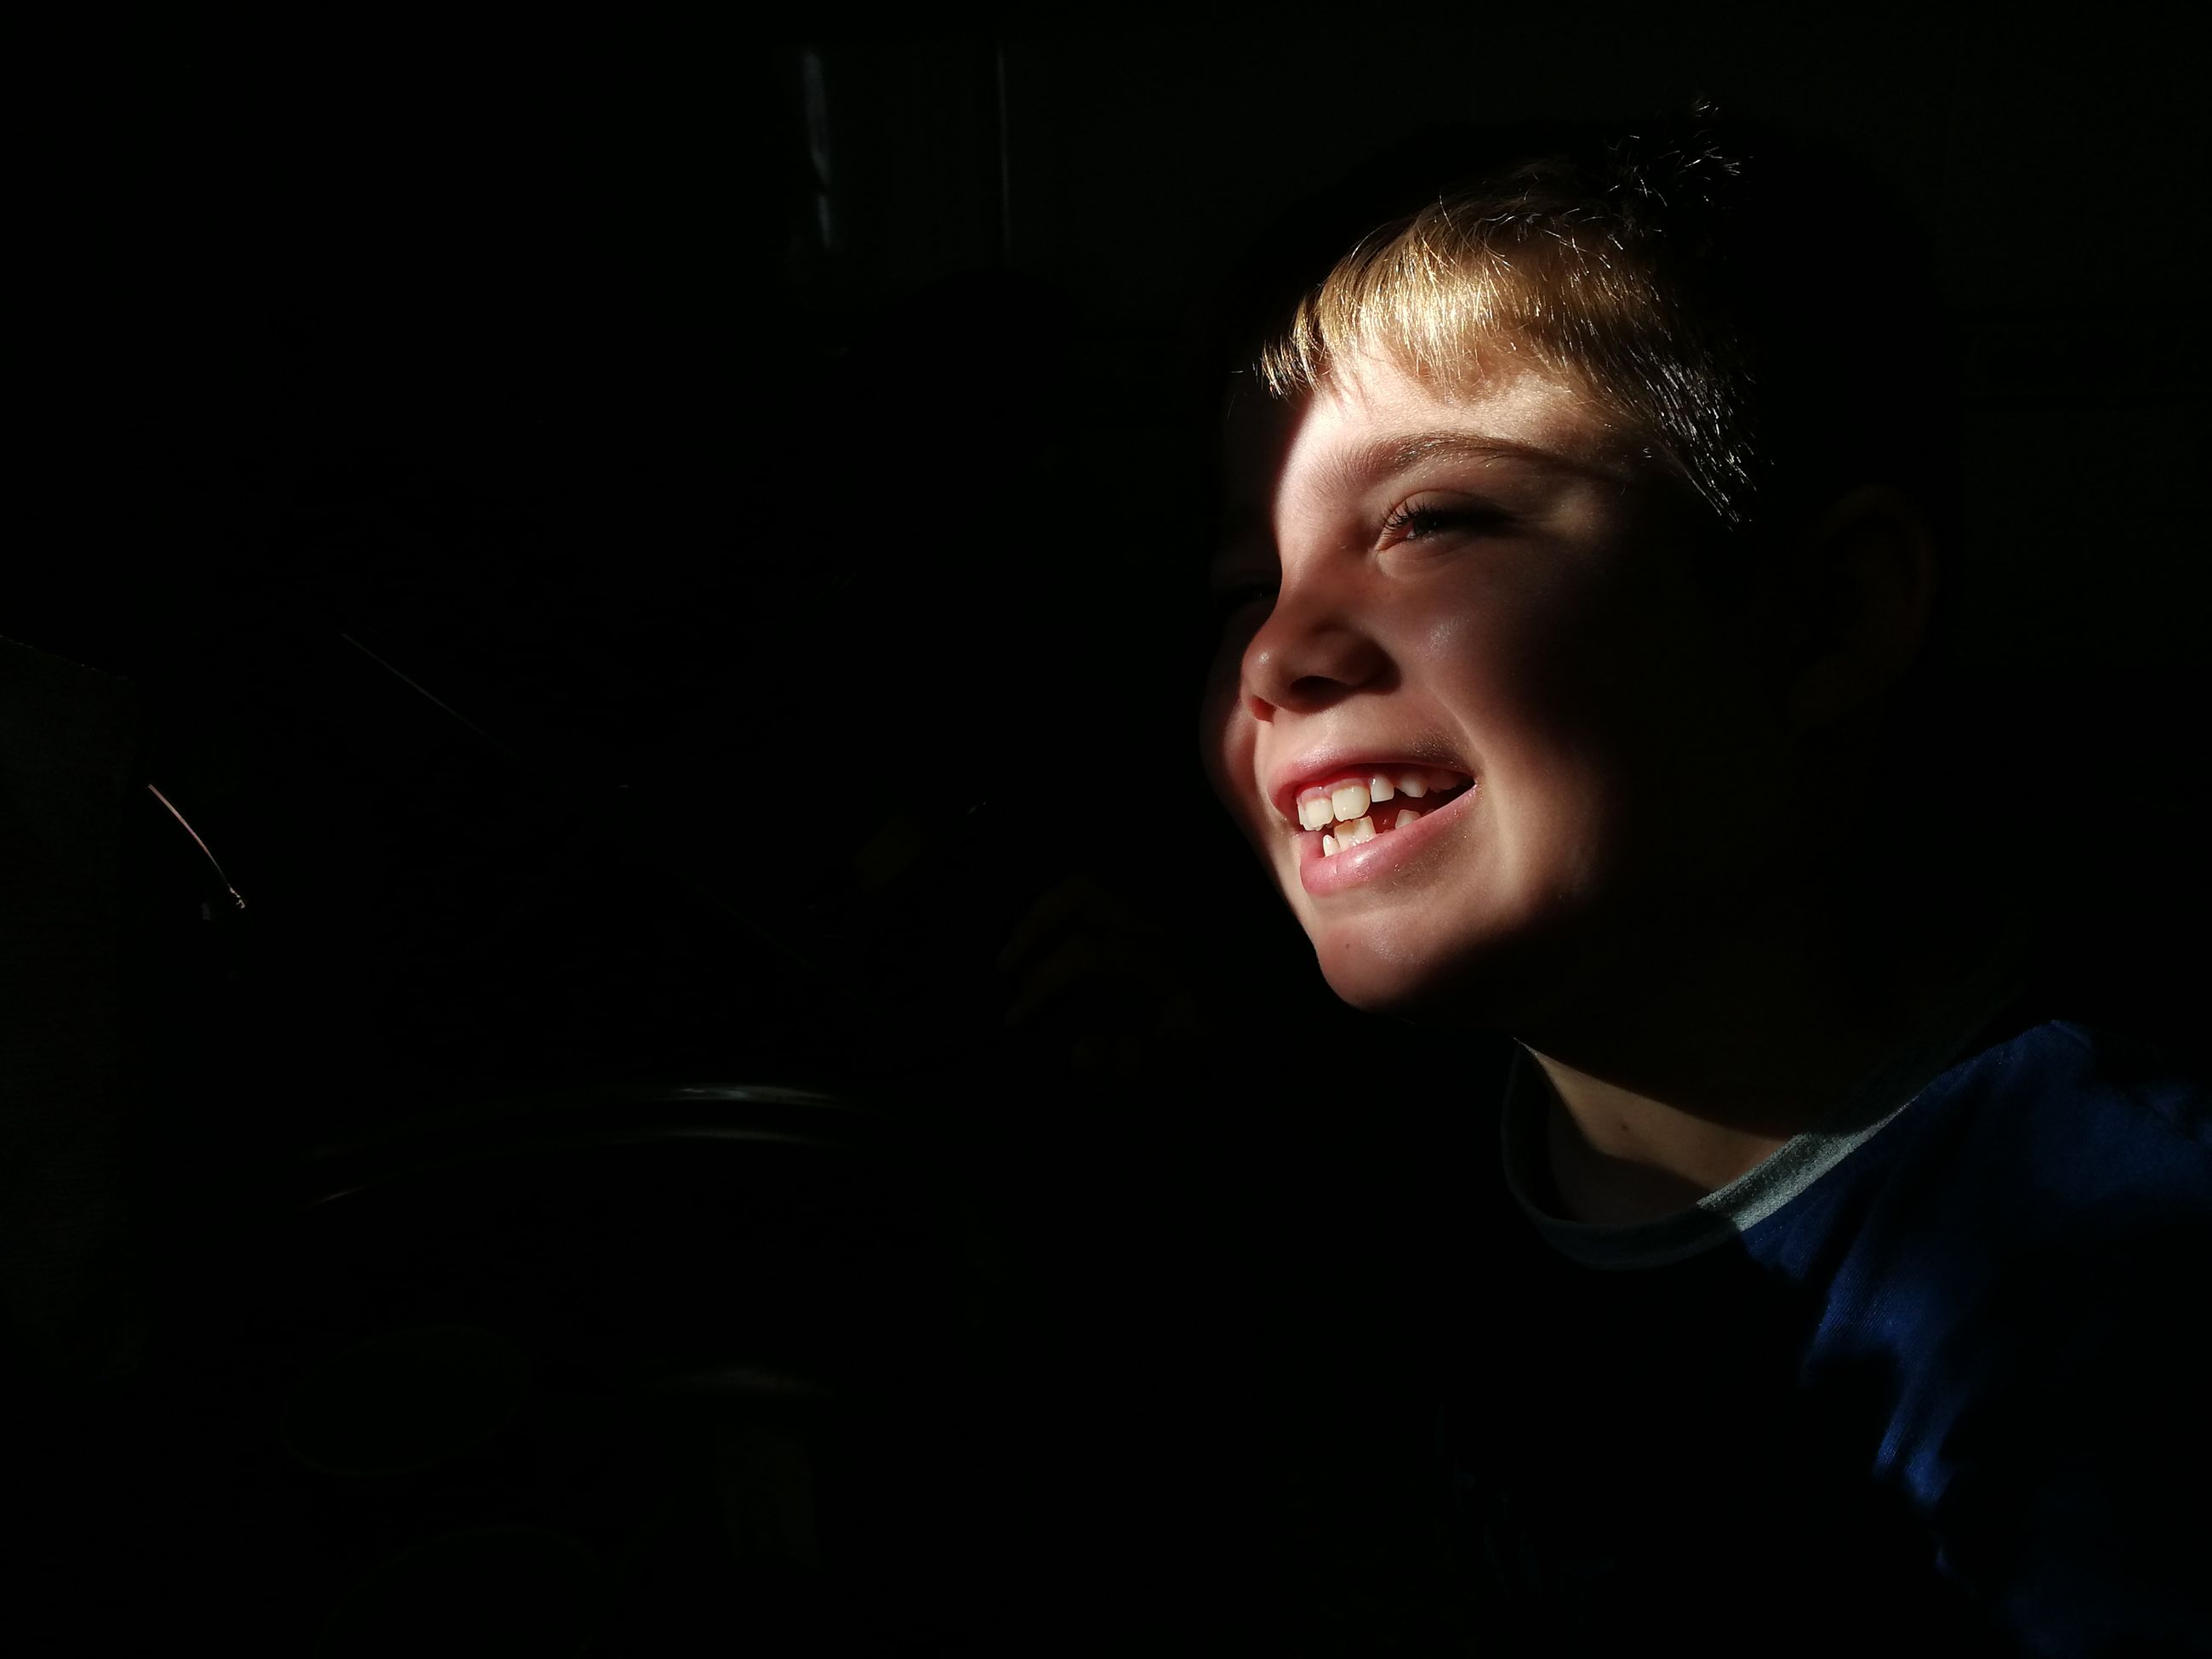 smiling, happiness, one person, indoors, real people, cheerful, boys, black background, childhood, night, young adult, close-up, people